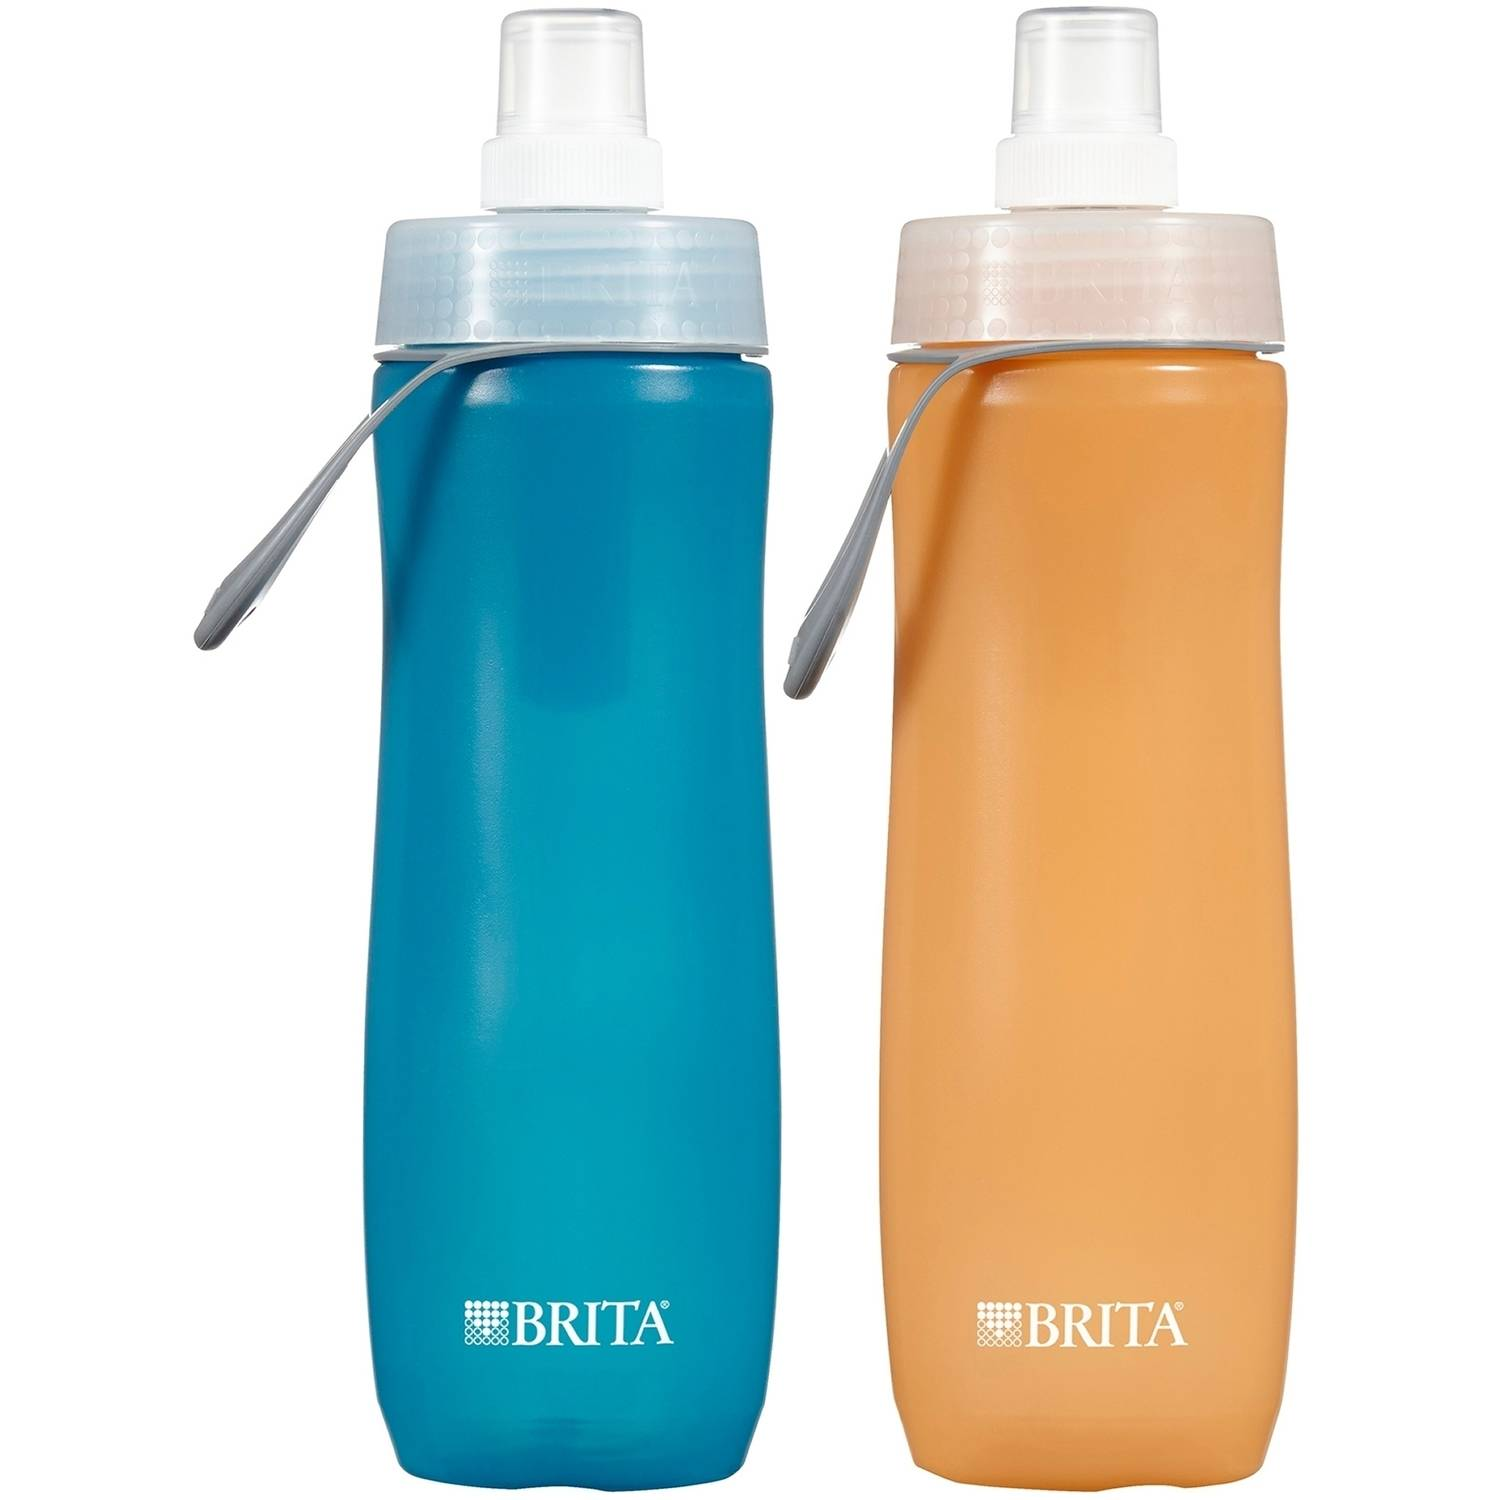 Brita Sport Water Filter Bottle, Twin Pack, Blue and Orange, 20 oz Bottle